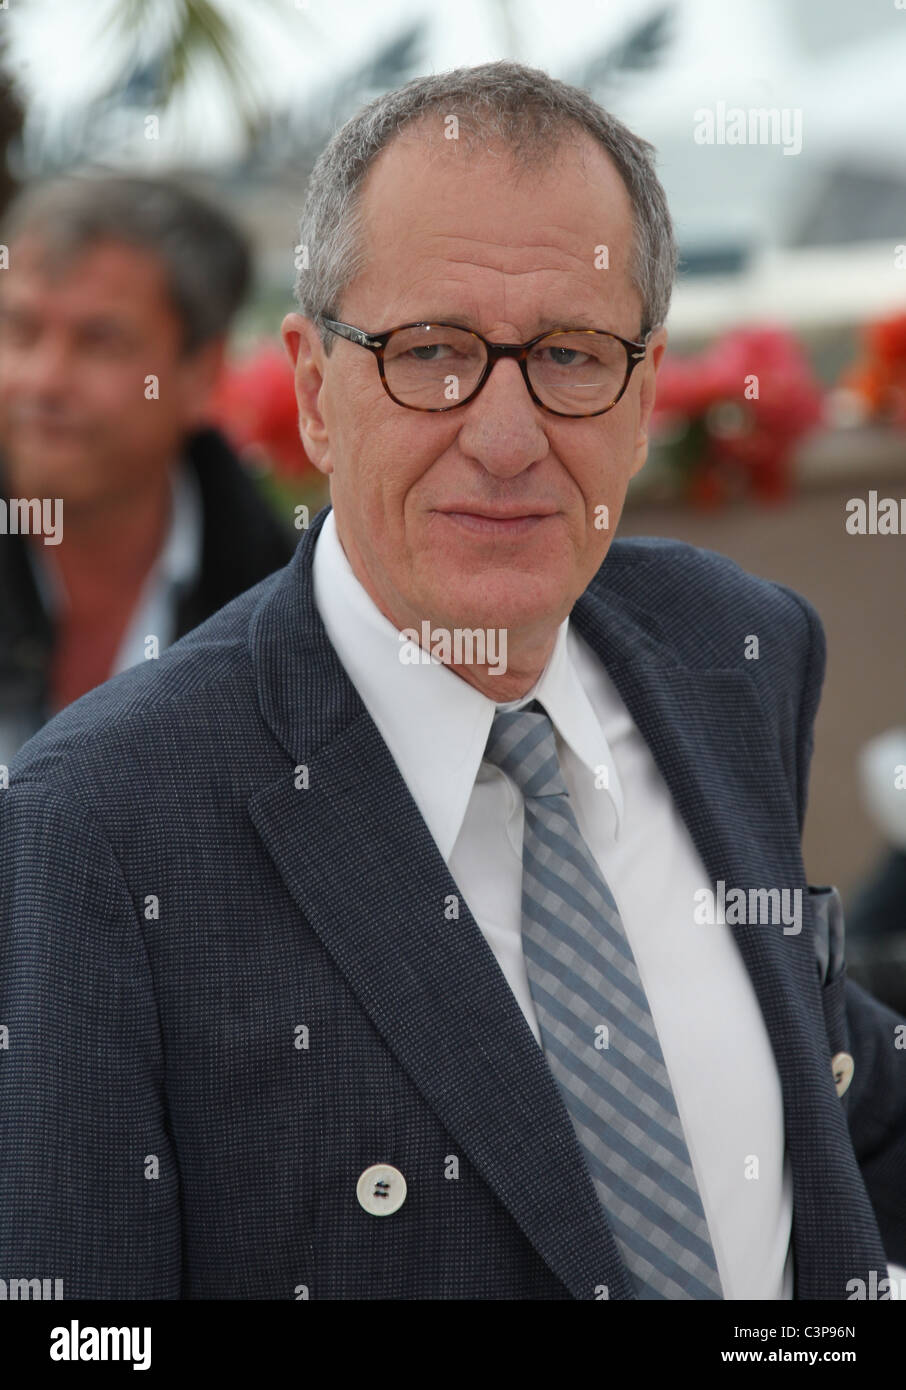 GEOFFREY RUSH PIRATES OF THE CARIBBEAN: ON STRANGER TIDES PHOTOCALL CANNES FILM FESTIVAL 2011 PALAIS DES FESTIVAL - Stock Image